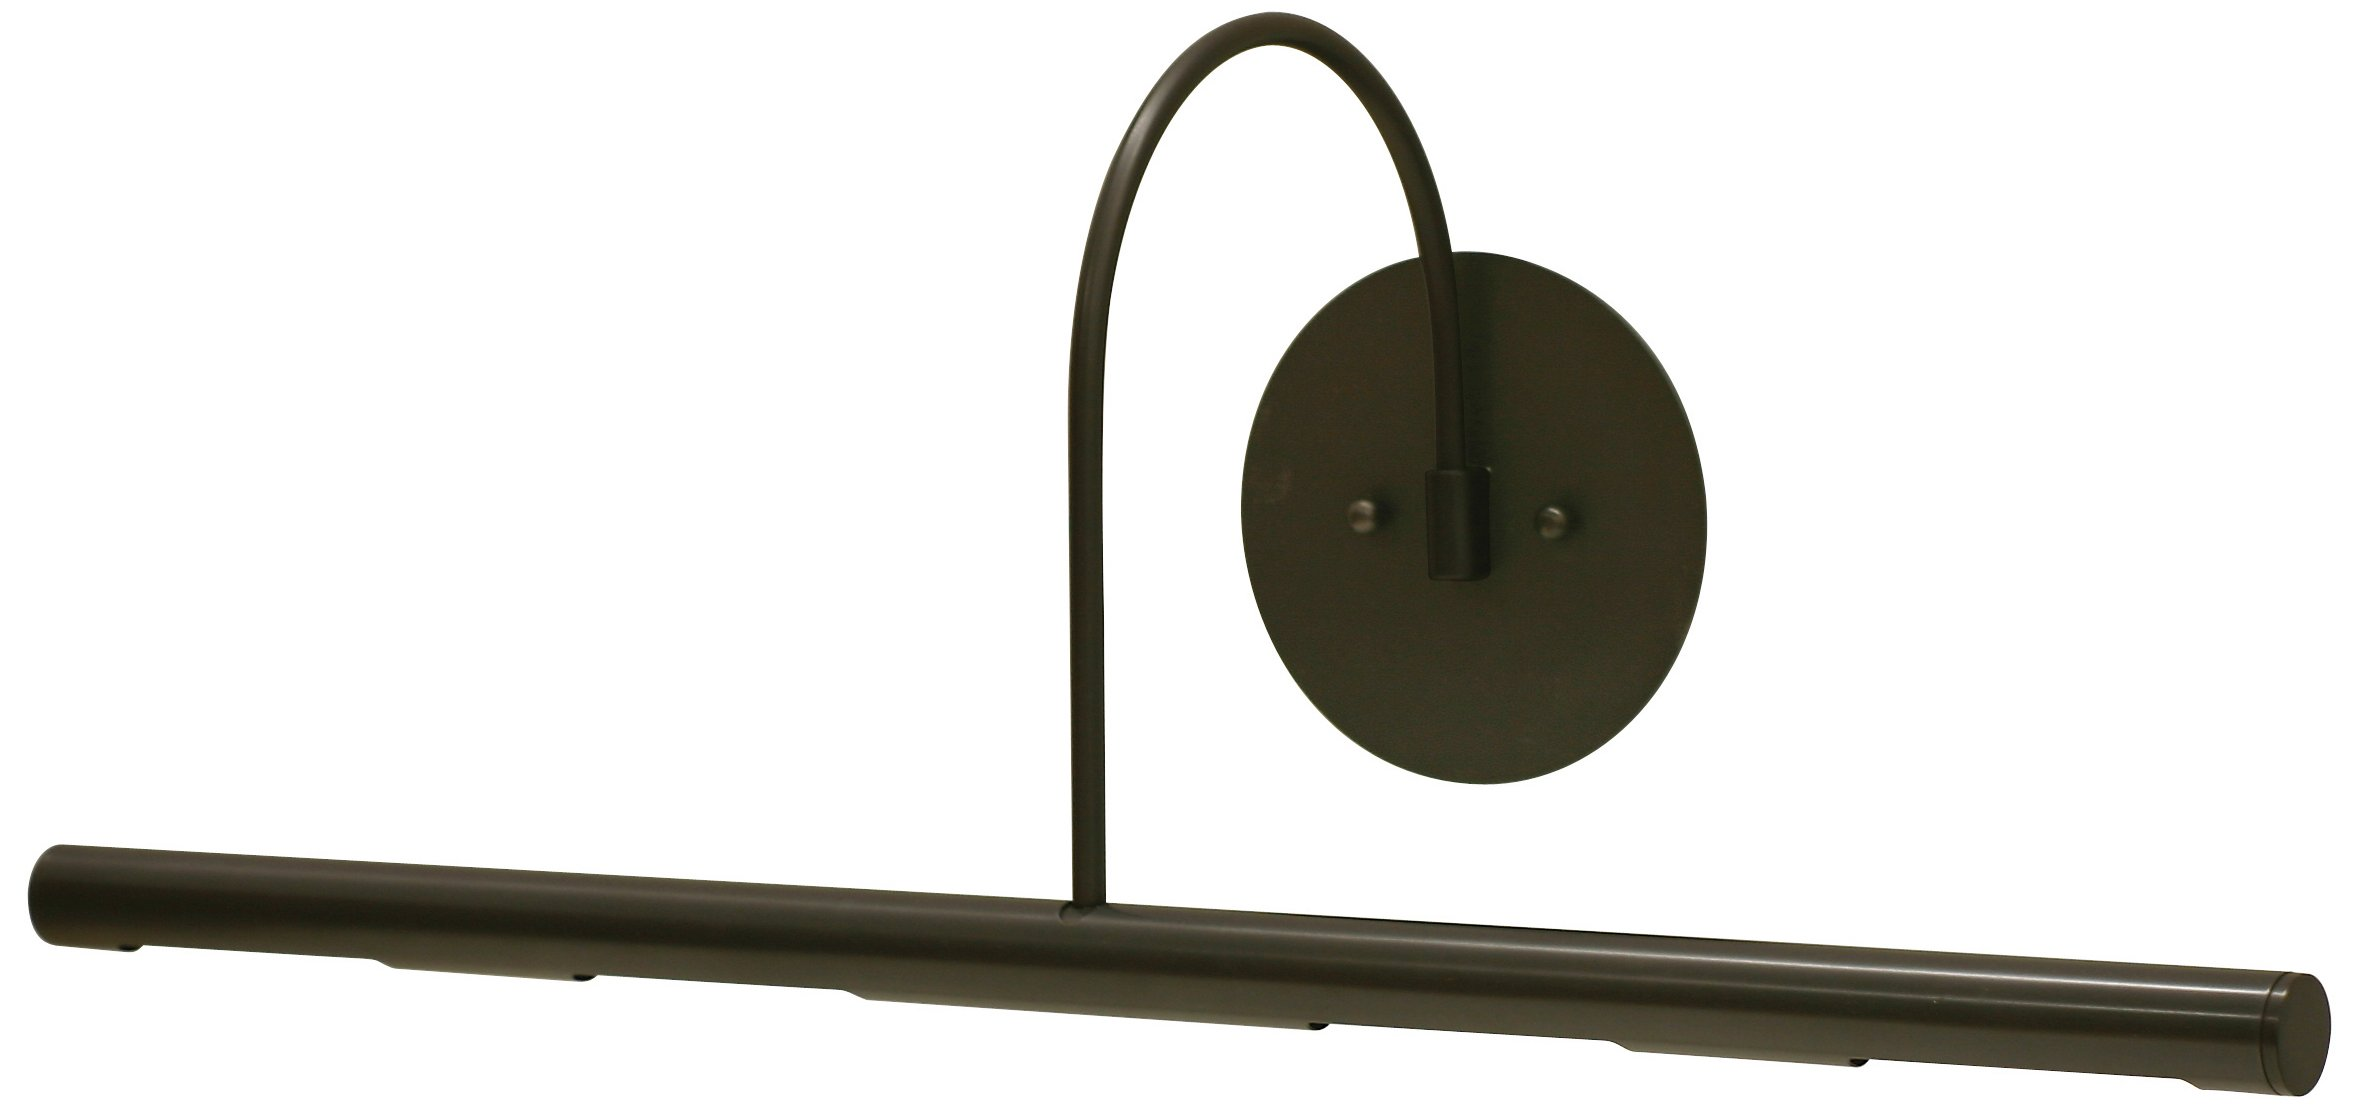 House of Troy DXL14-91 Direct Wire Slim-Line 2LT Picture Light, Oil Rubbed Bronze Finish by House of Troy Lighting